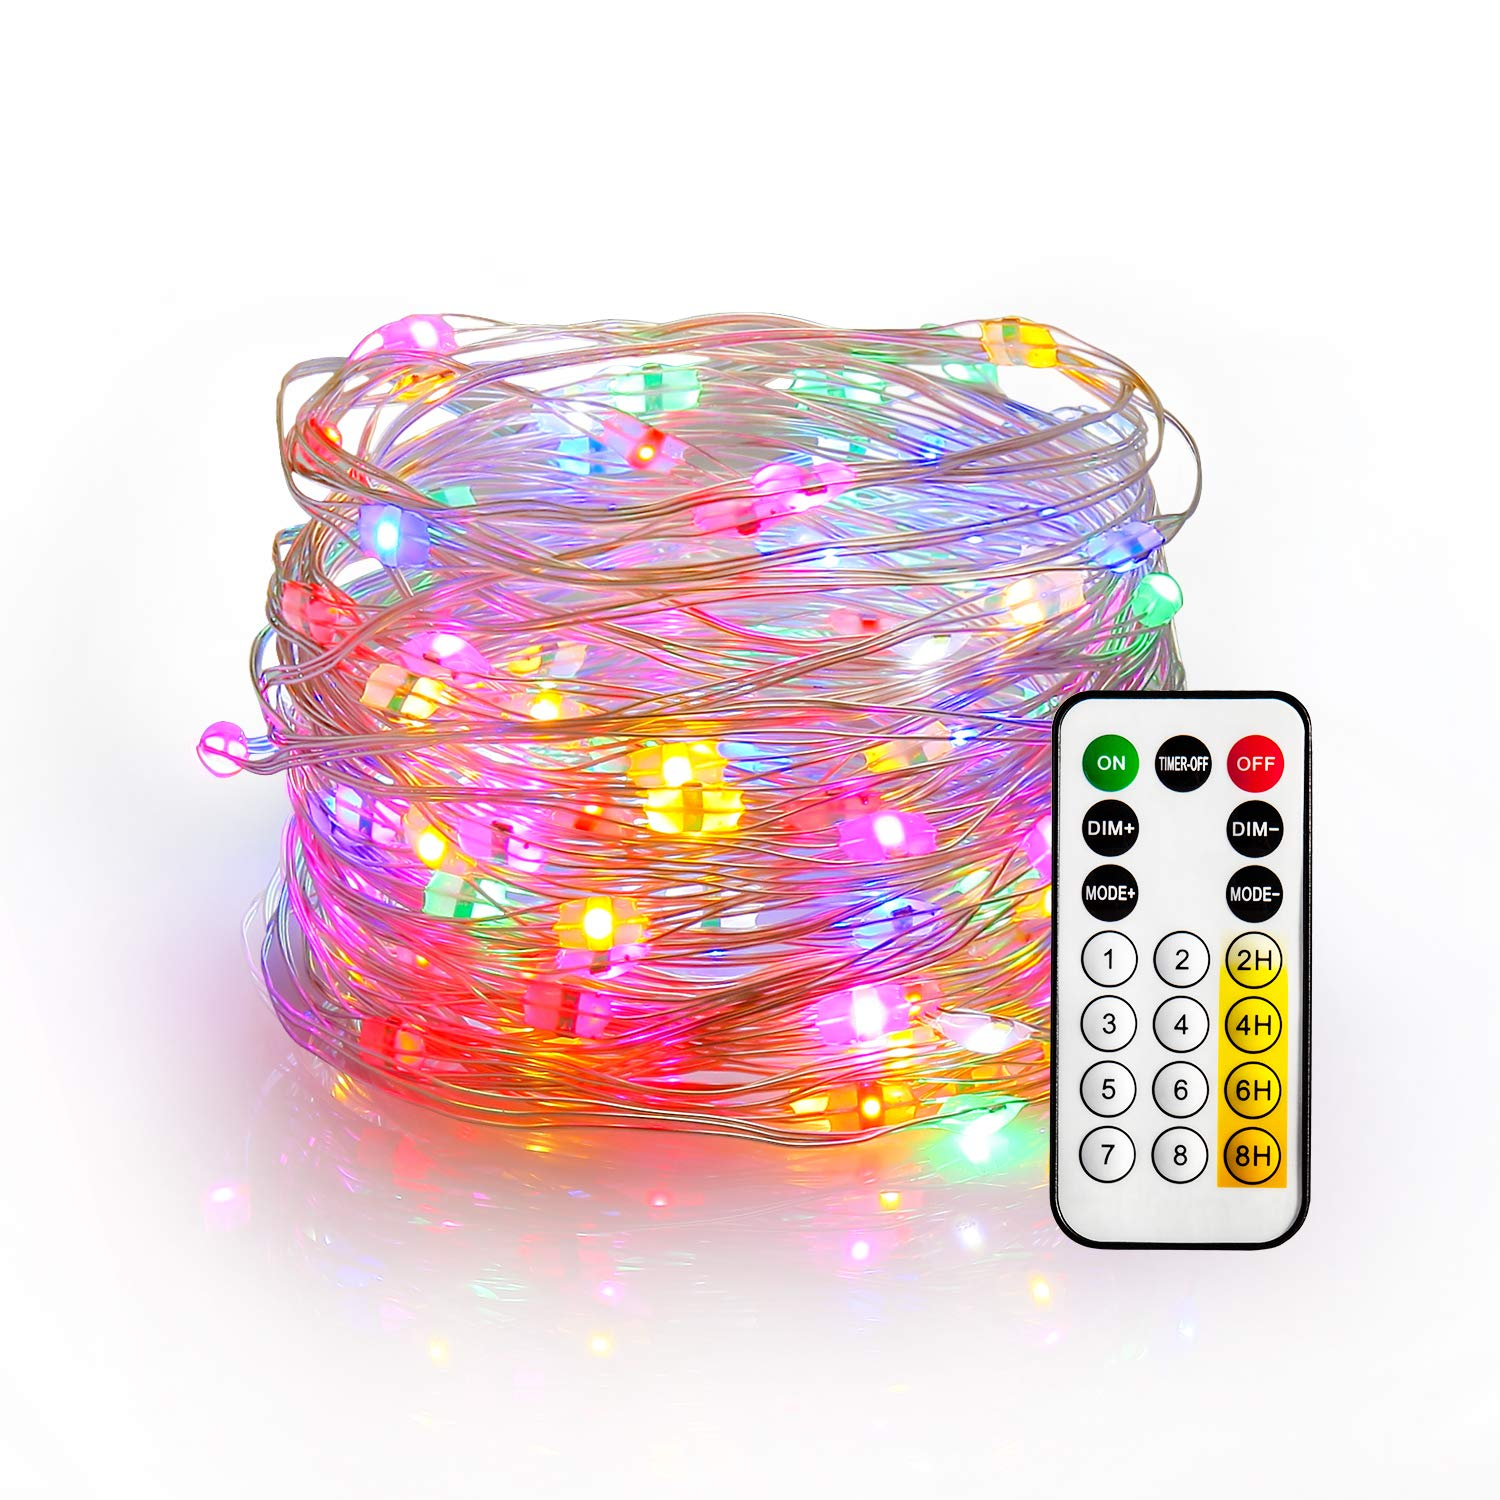 YIHONG Fairy Lights USB Plug in String Lights 33ft Firefly Twinkle Lights Multicolored String Lights for Christmas Party Decoration Wedding Festival RF Remote with 8 Dynamic Flashing Modes